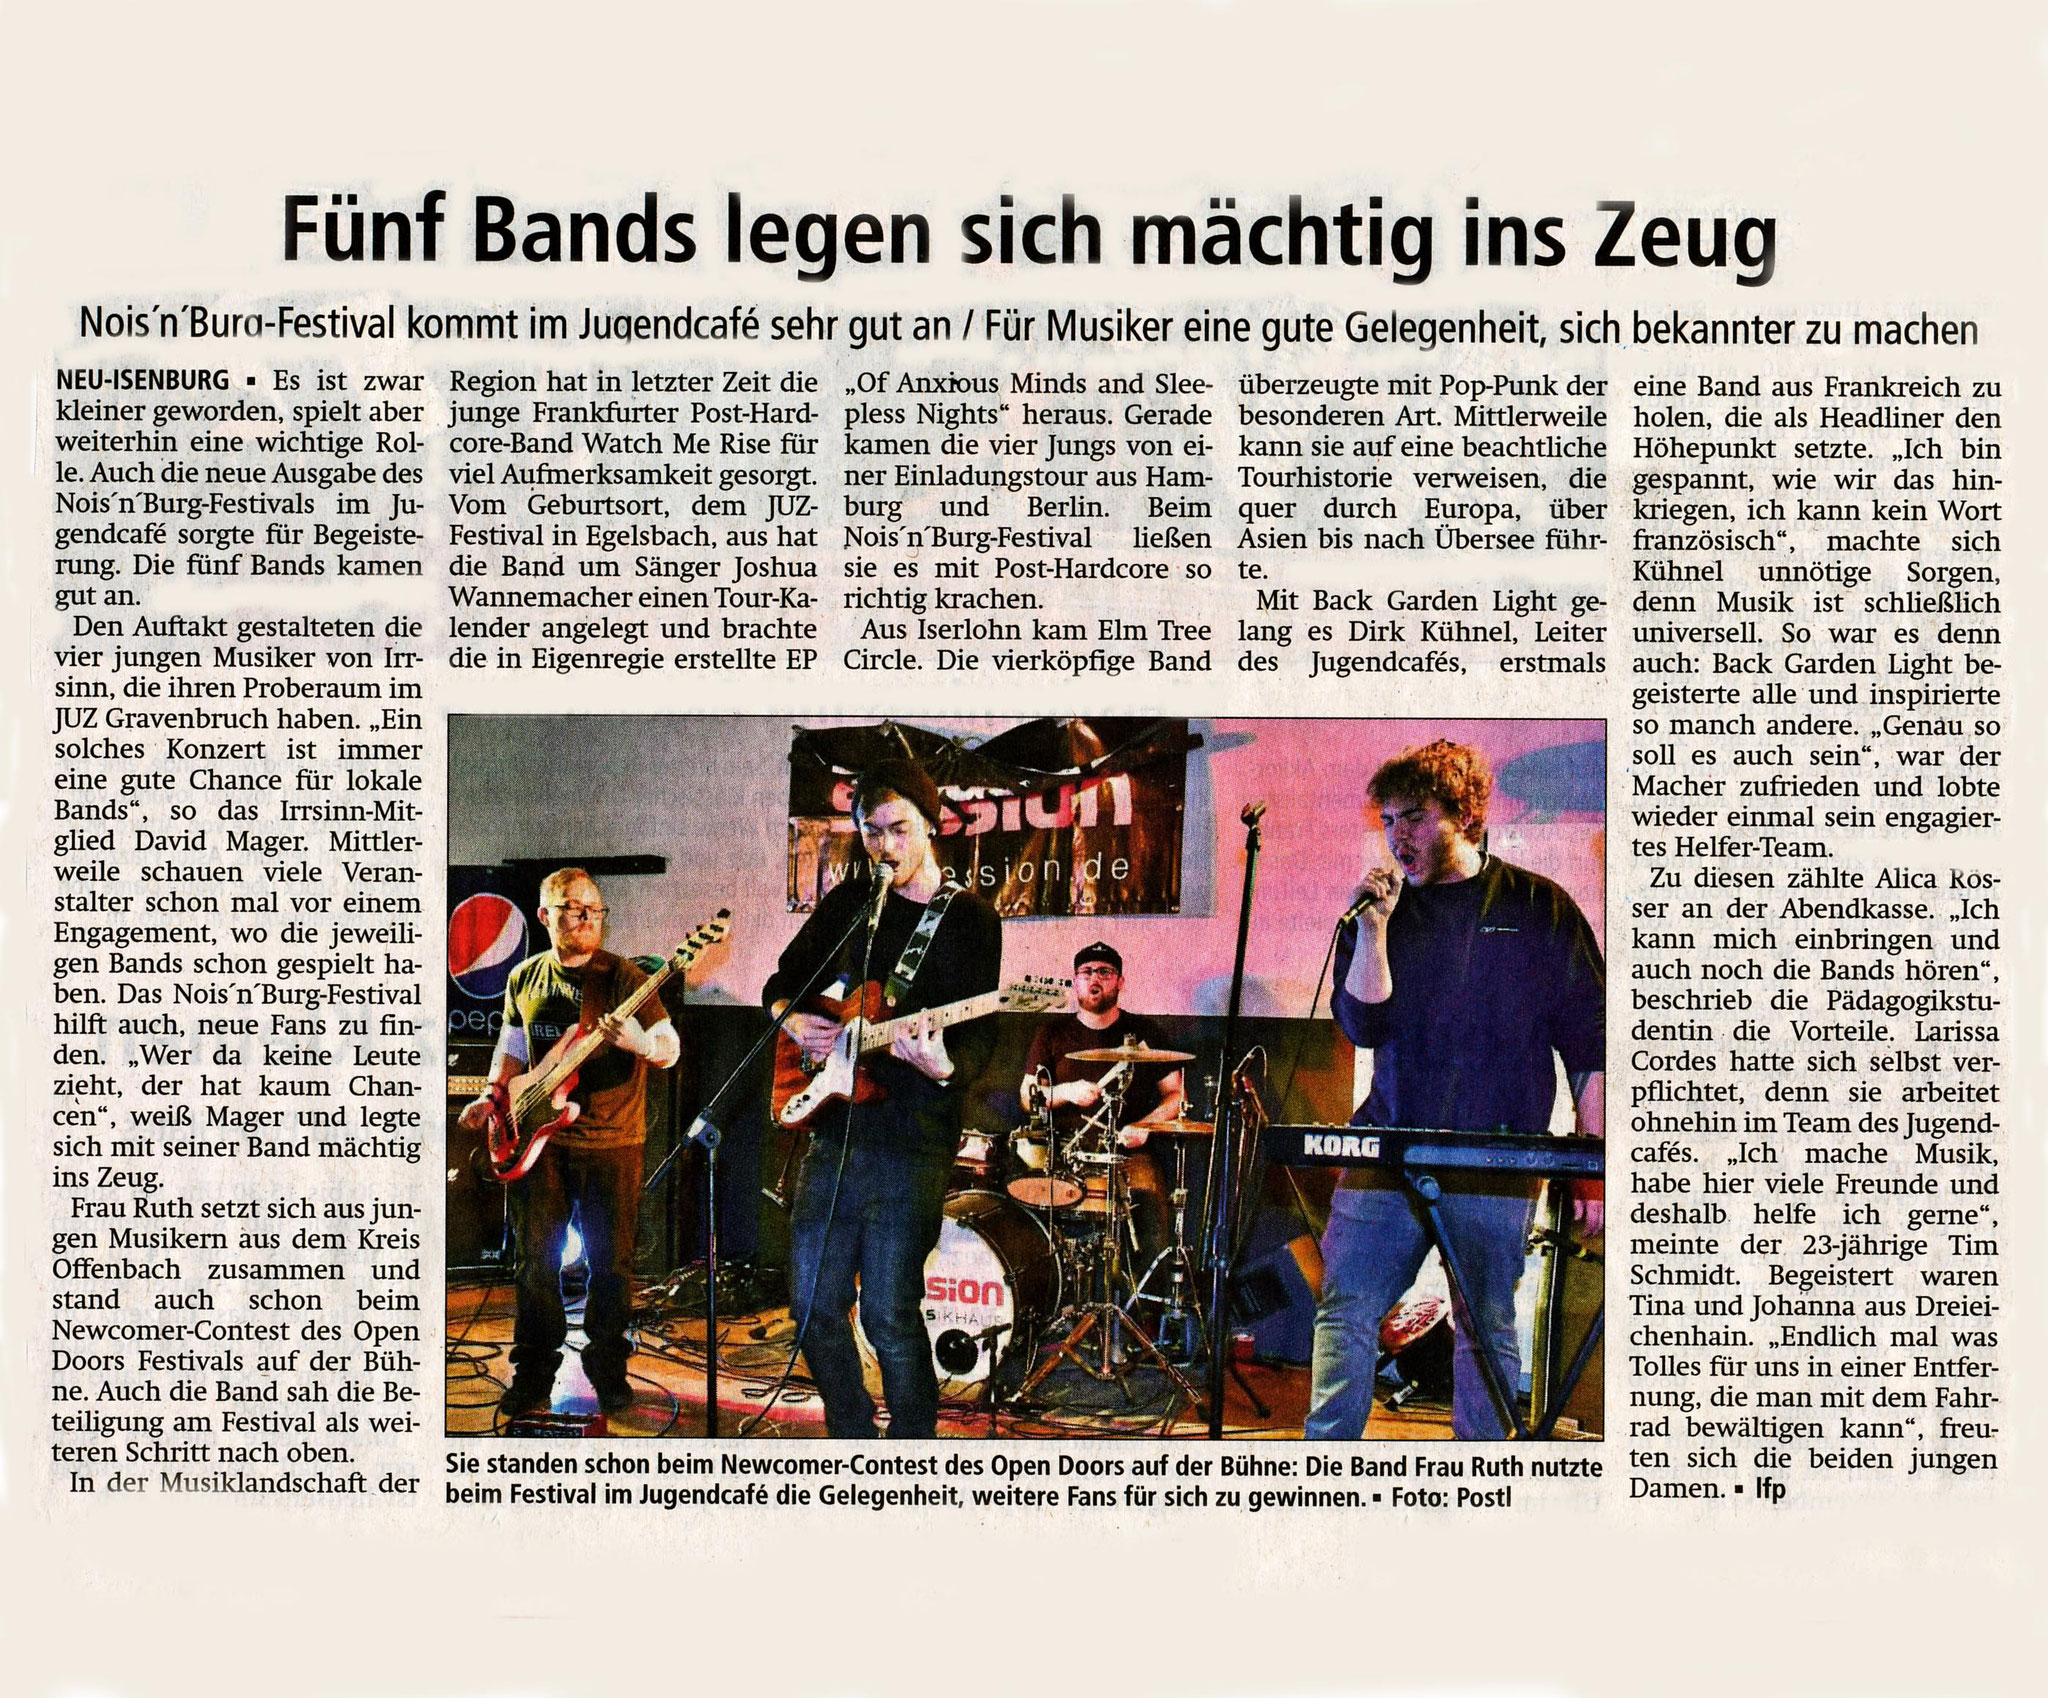 Offenbach Post, 24.10.2018